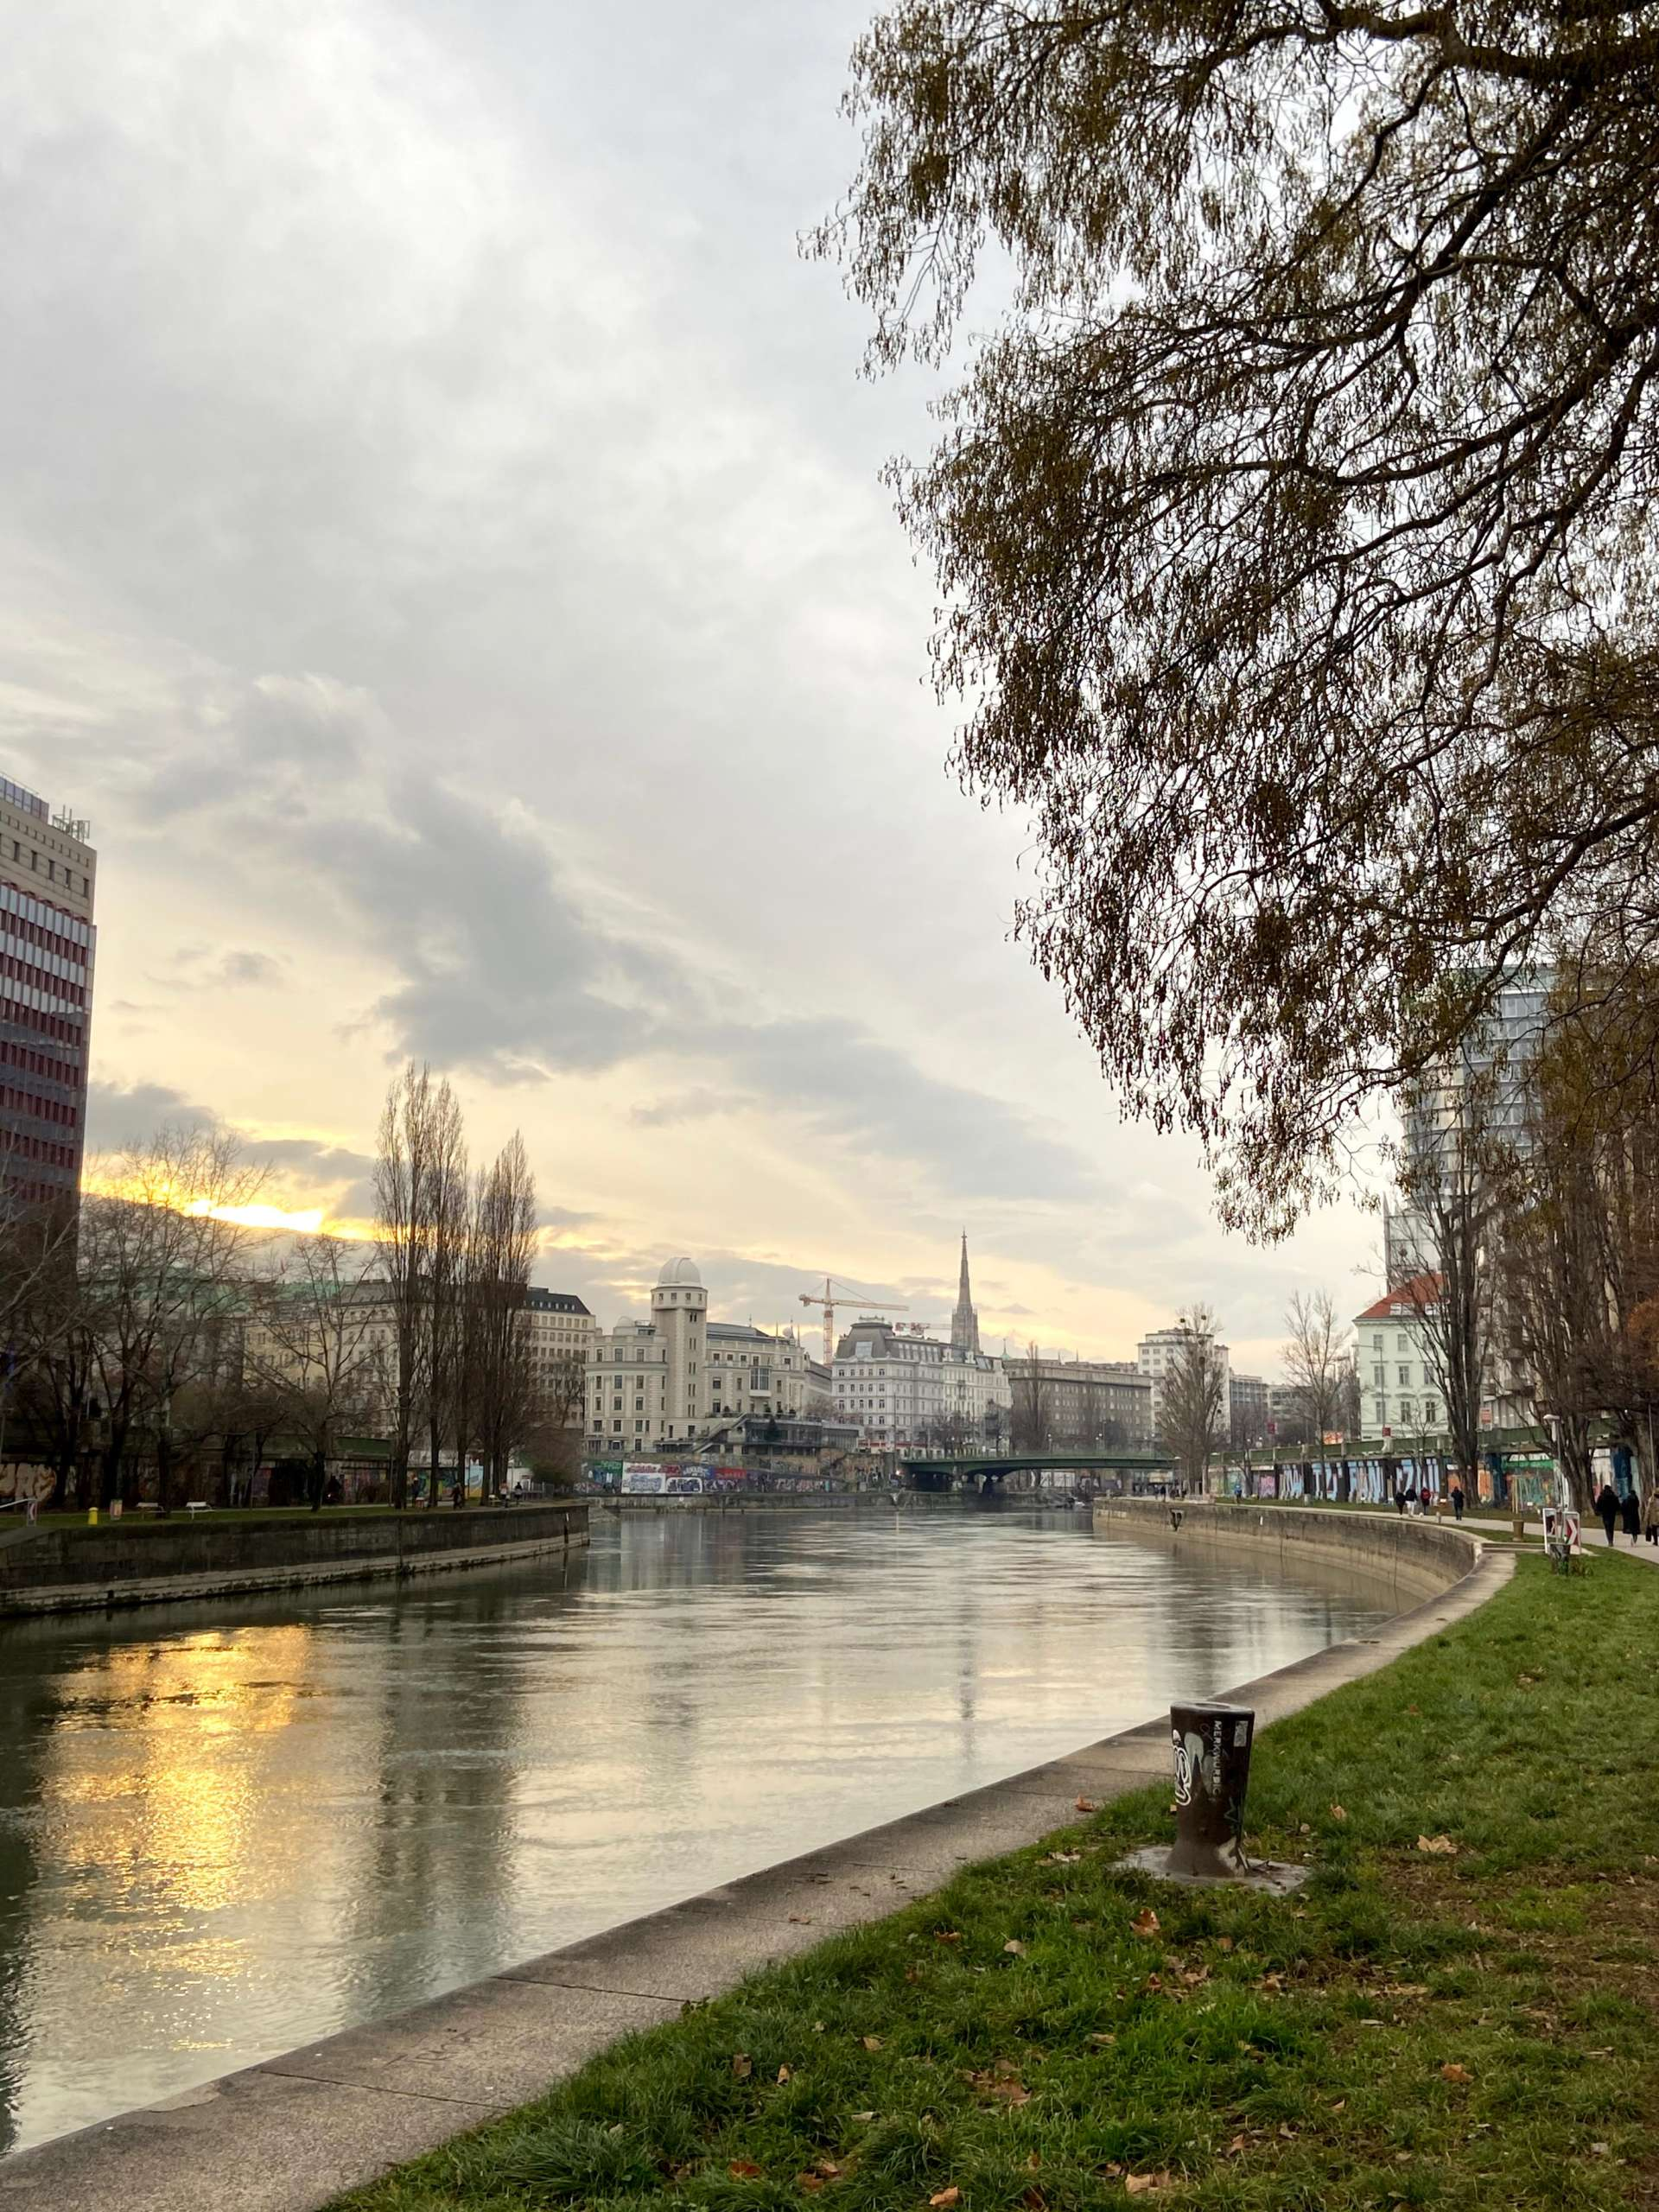 walking along the donaukanal in vienna, witha view of the first district